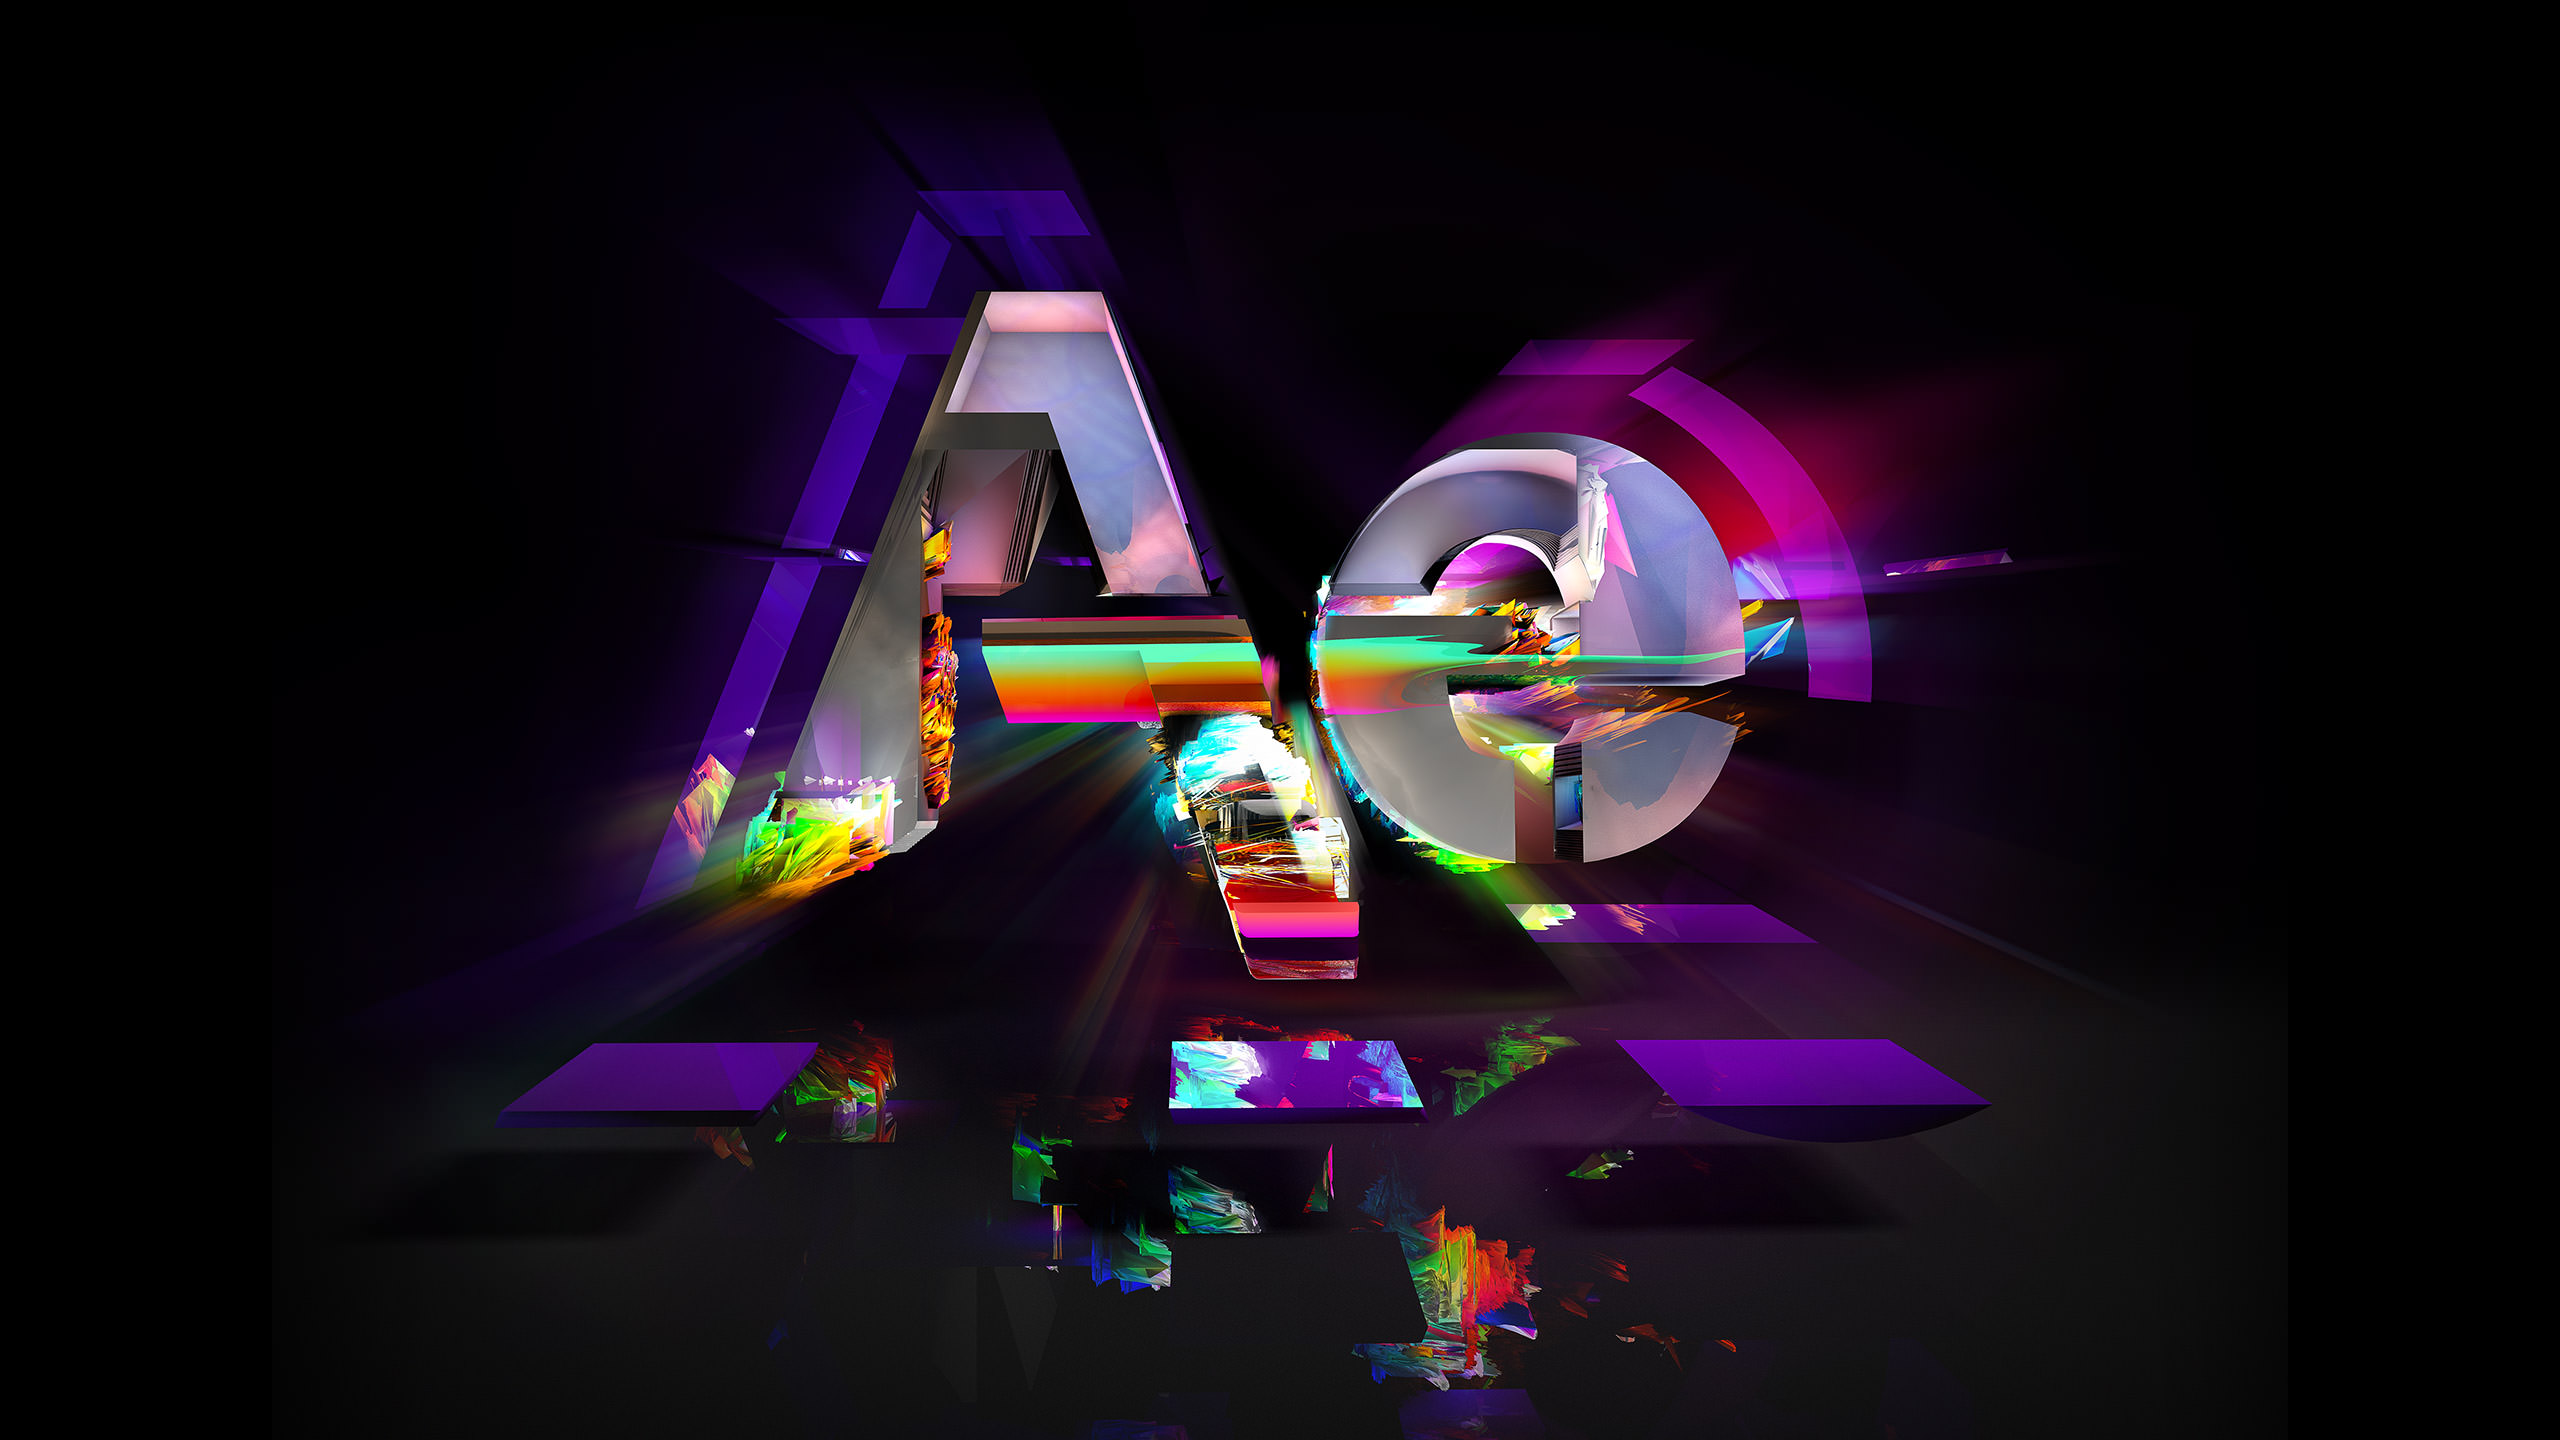 Adobe CC After Effects graphic image